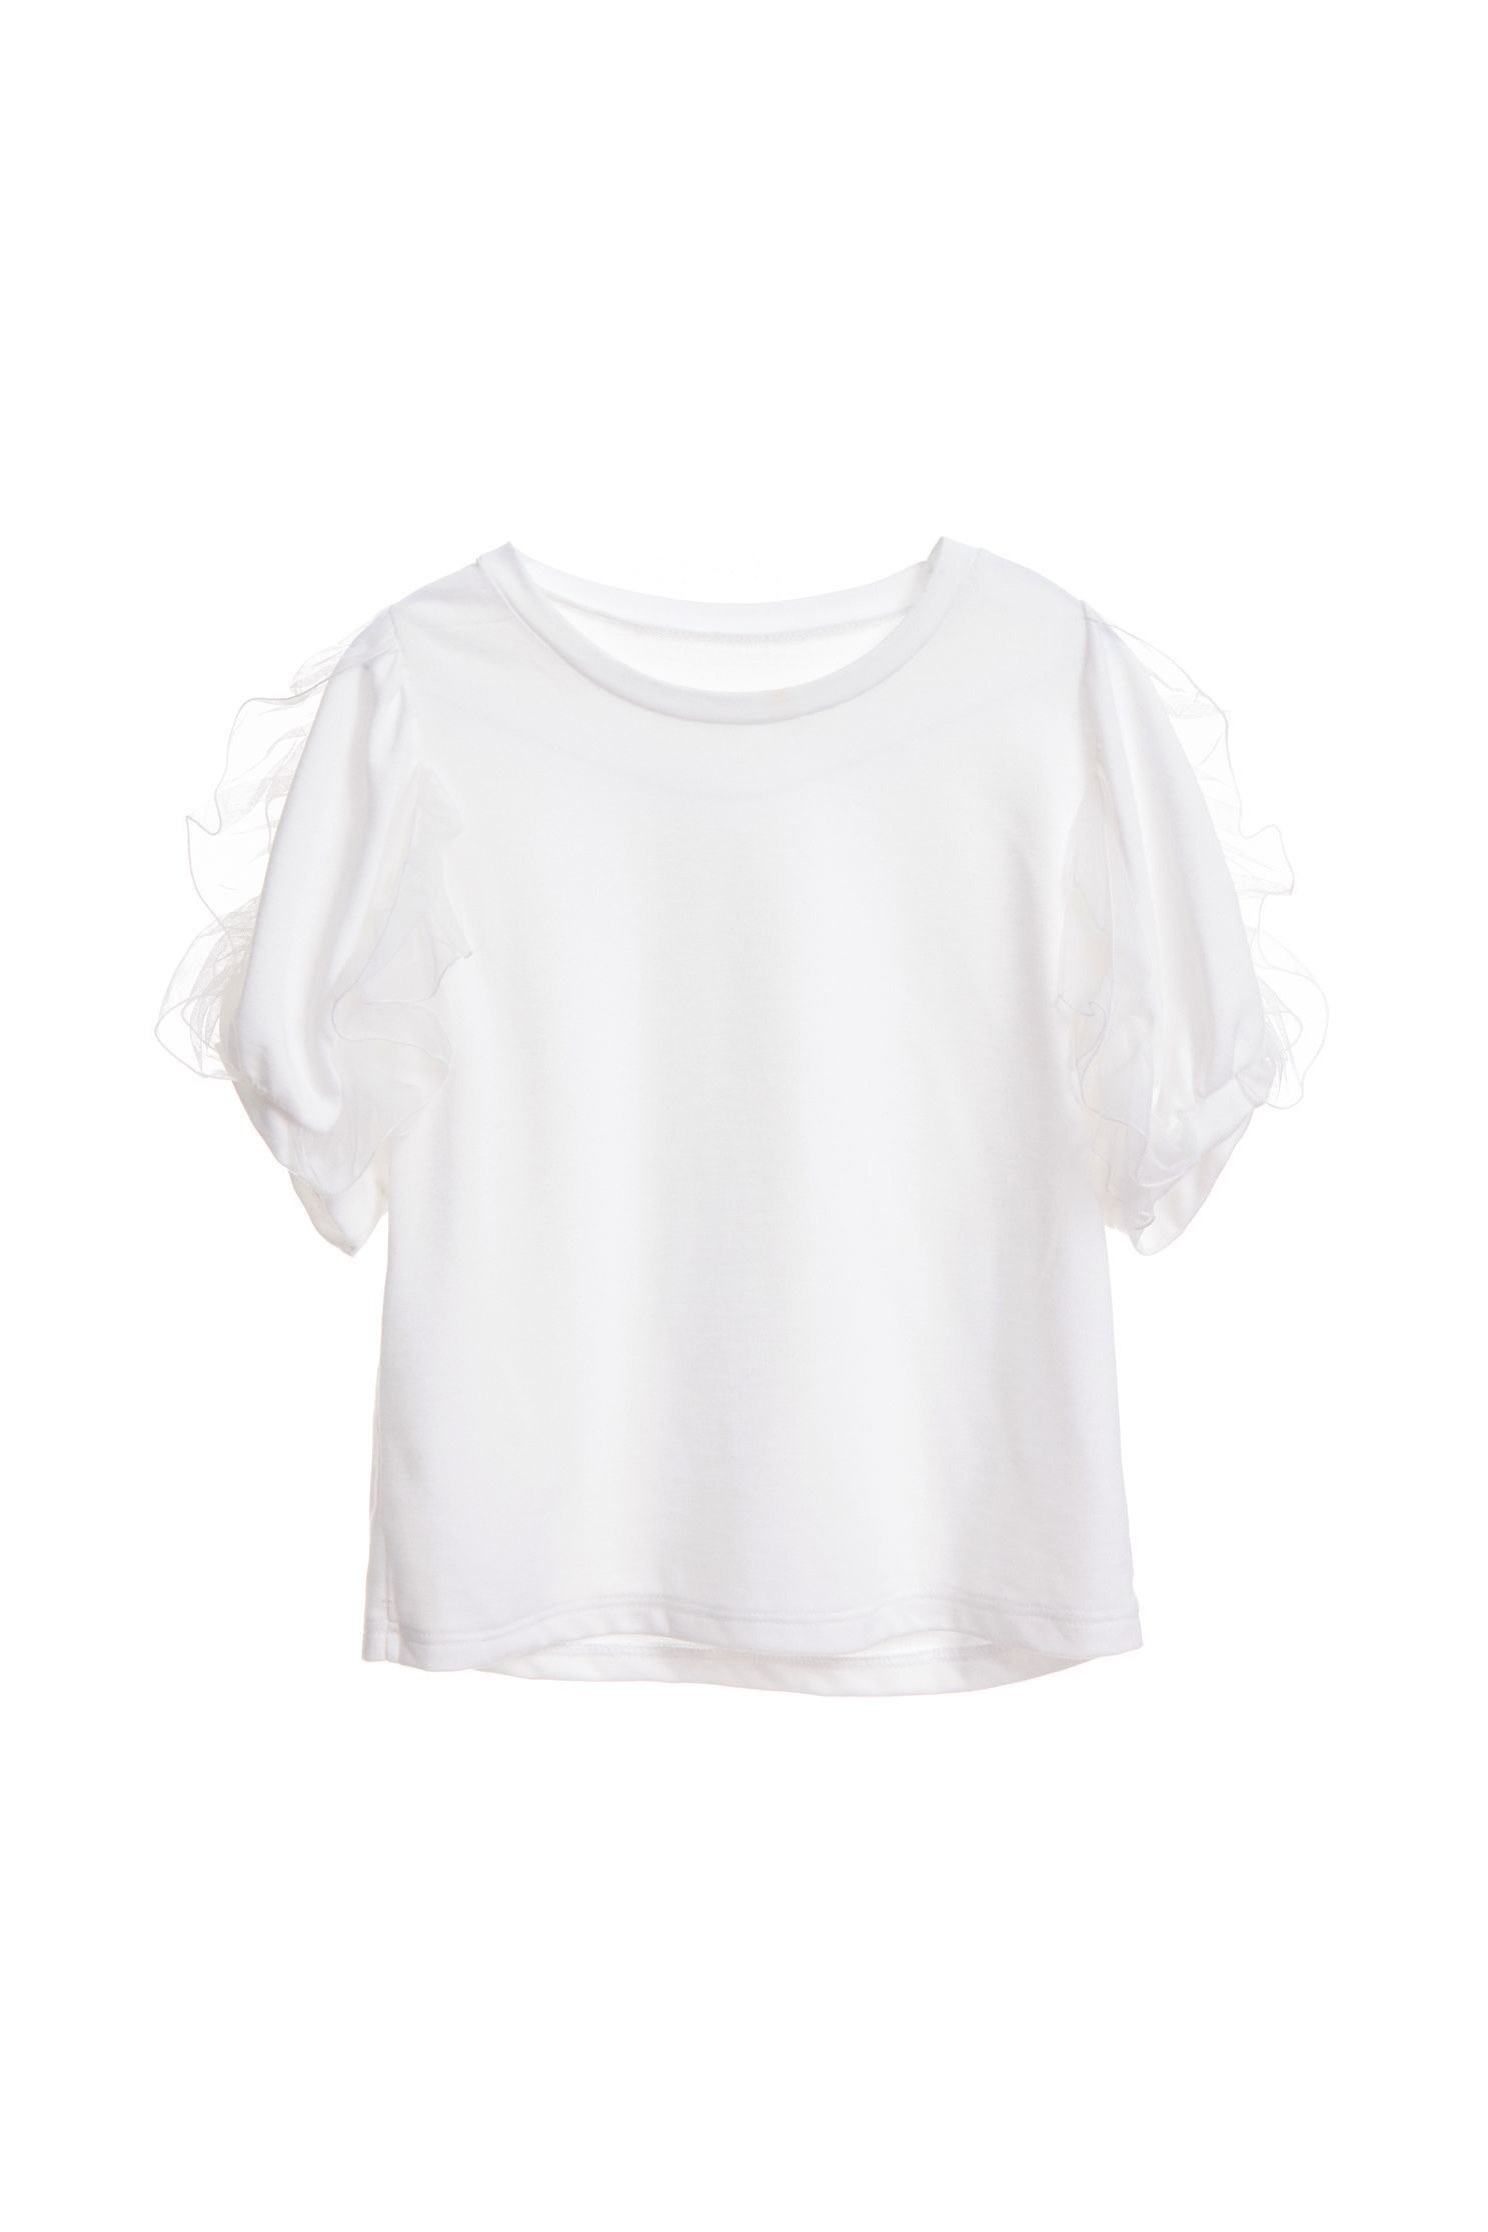 Simple mixed top